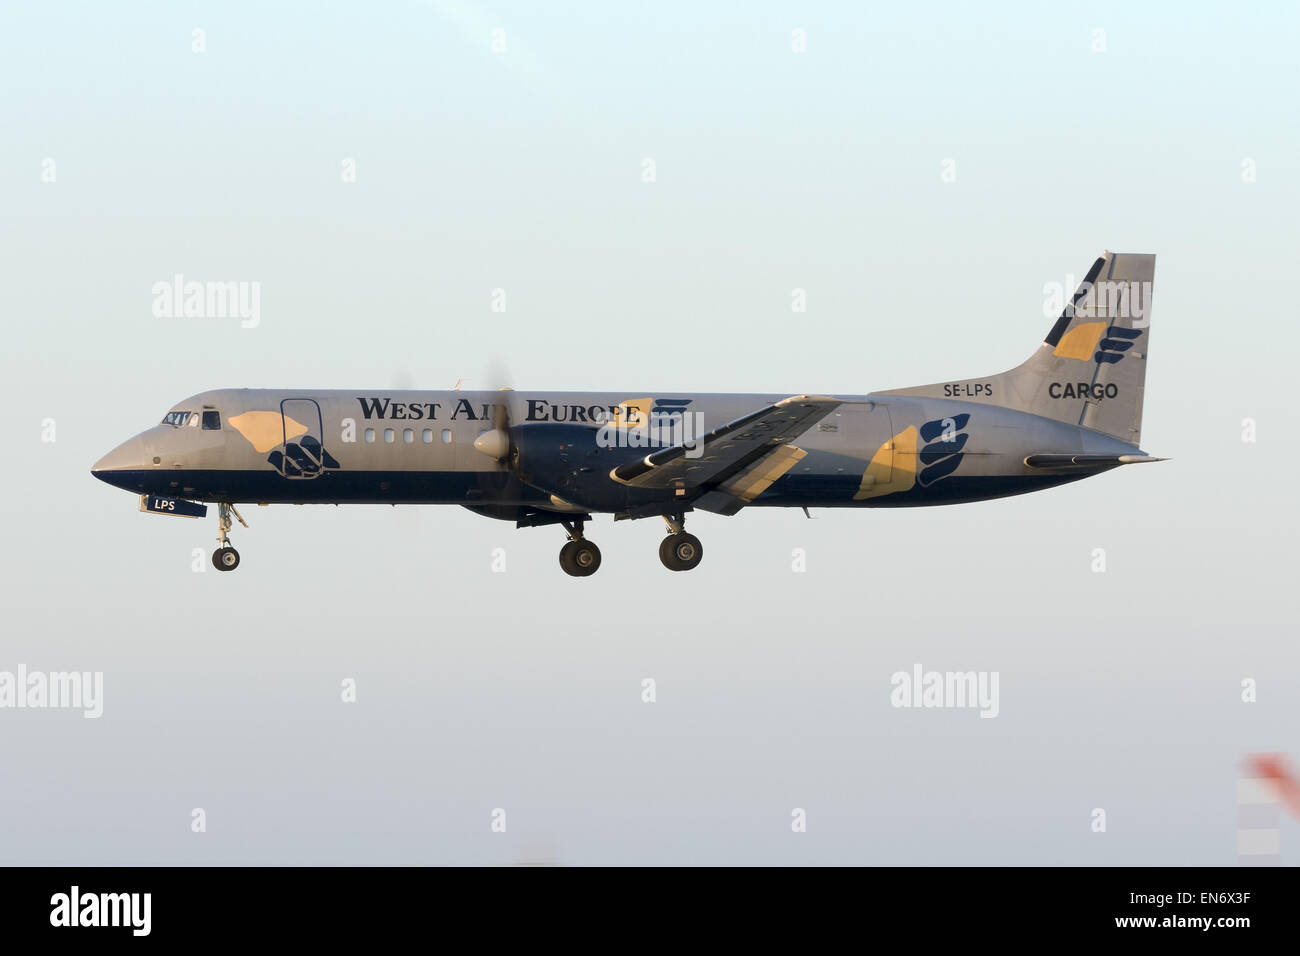 West Air Sweden British Aerospace ATP landing in the last rays of the day. - Stock Image